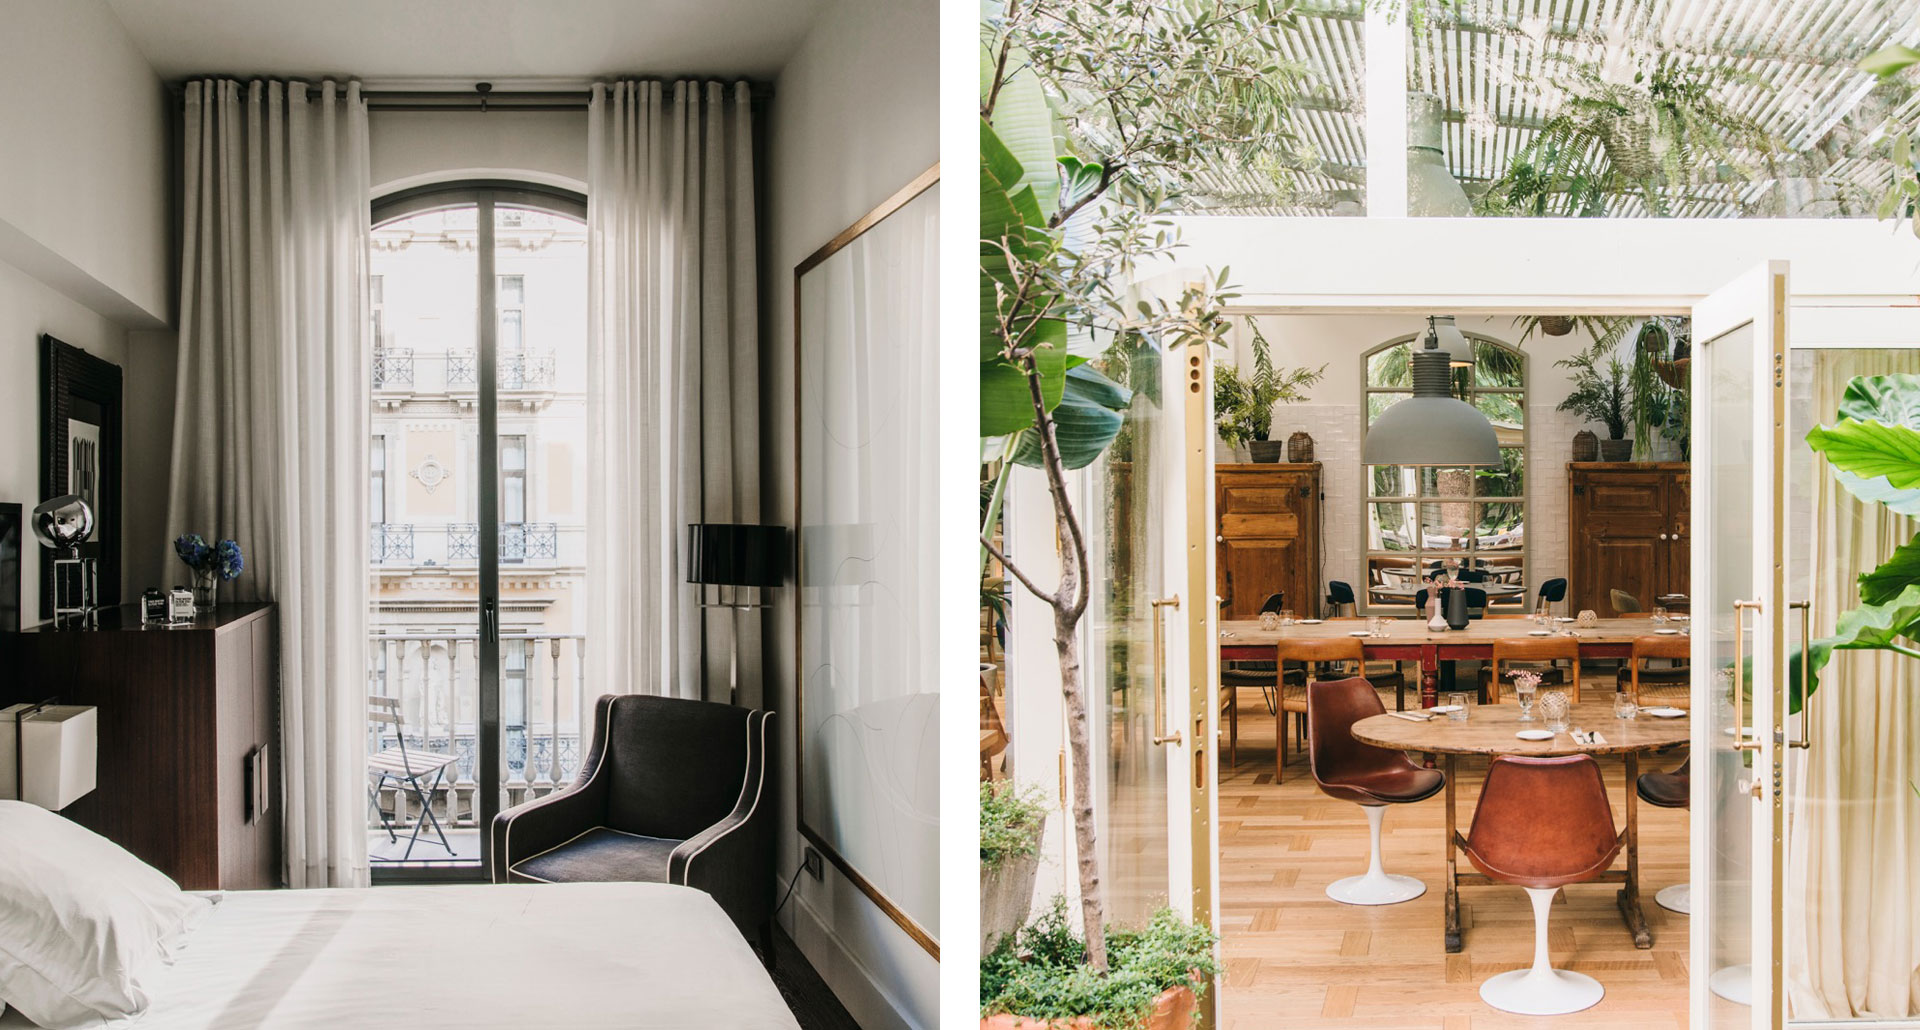 Hotel Pulitzer - boutique hotel in Barcelona